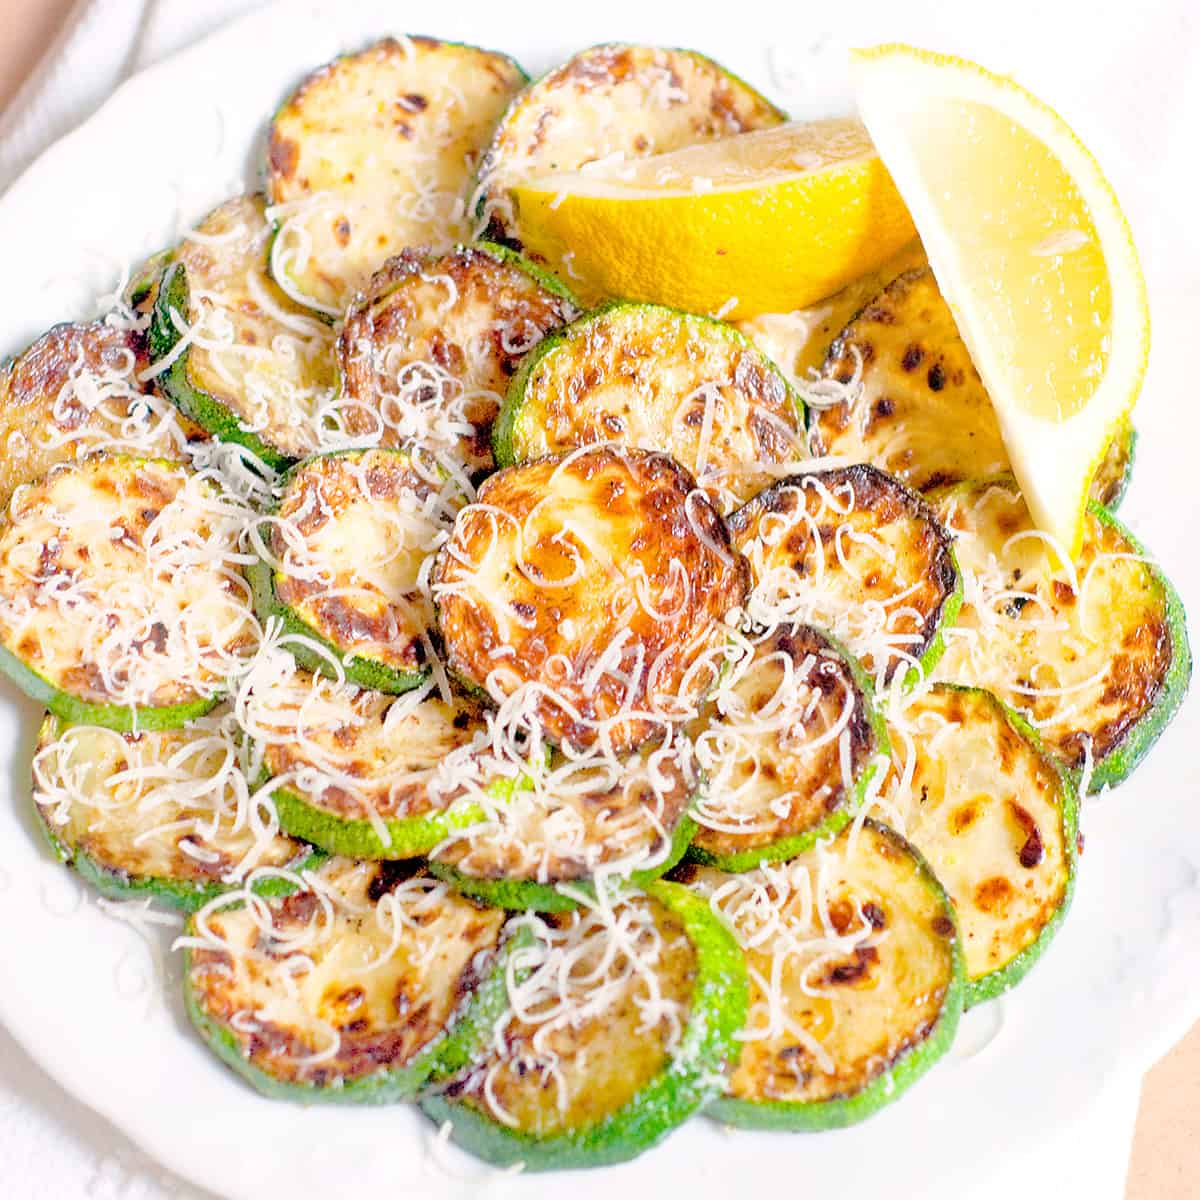 Pan Fried Zucchini with Lemon and Parmesan arranged on a serving plate.